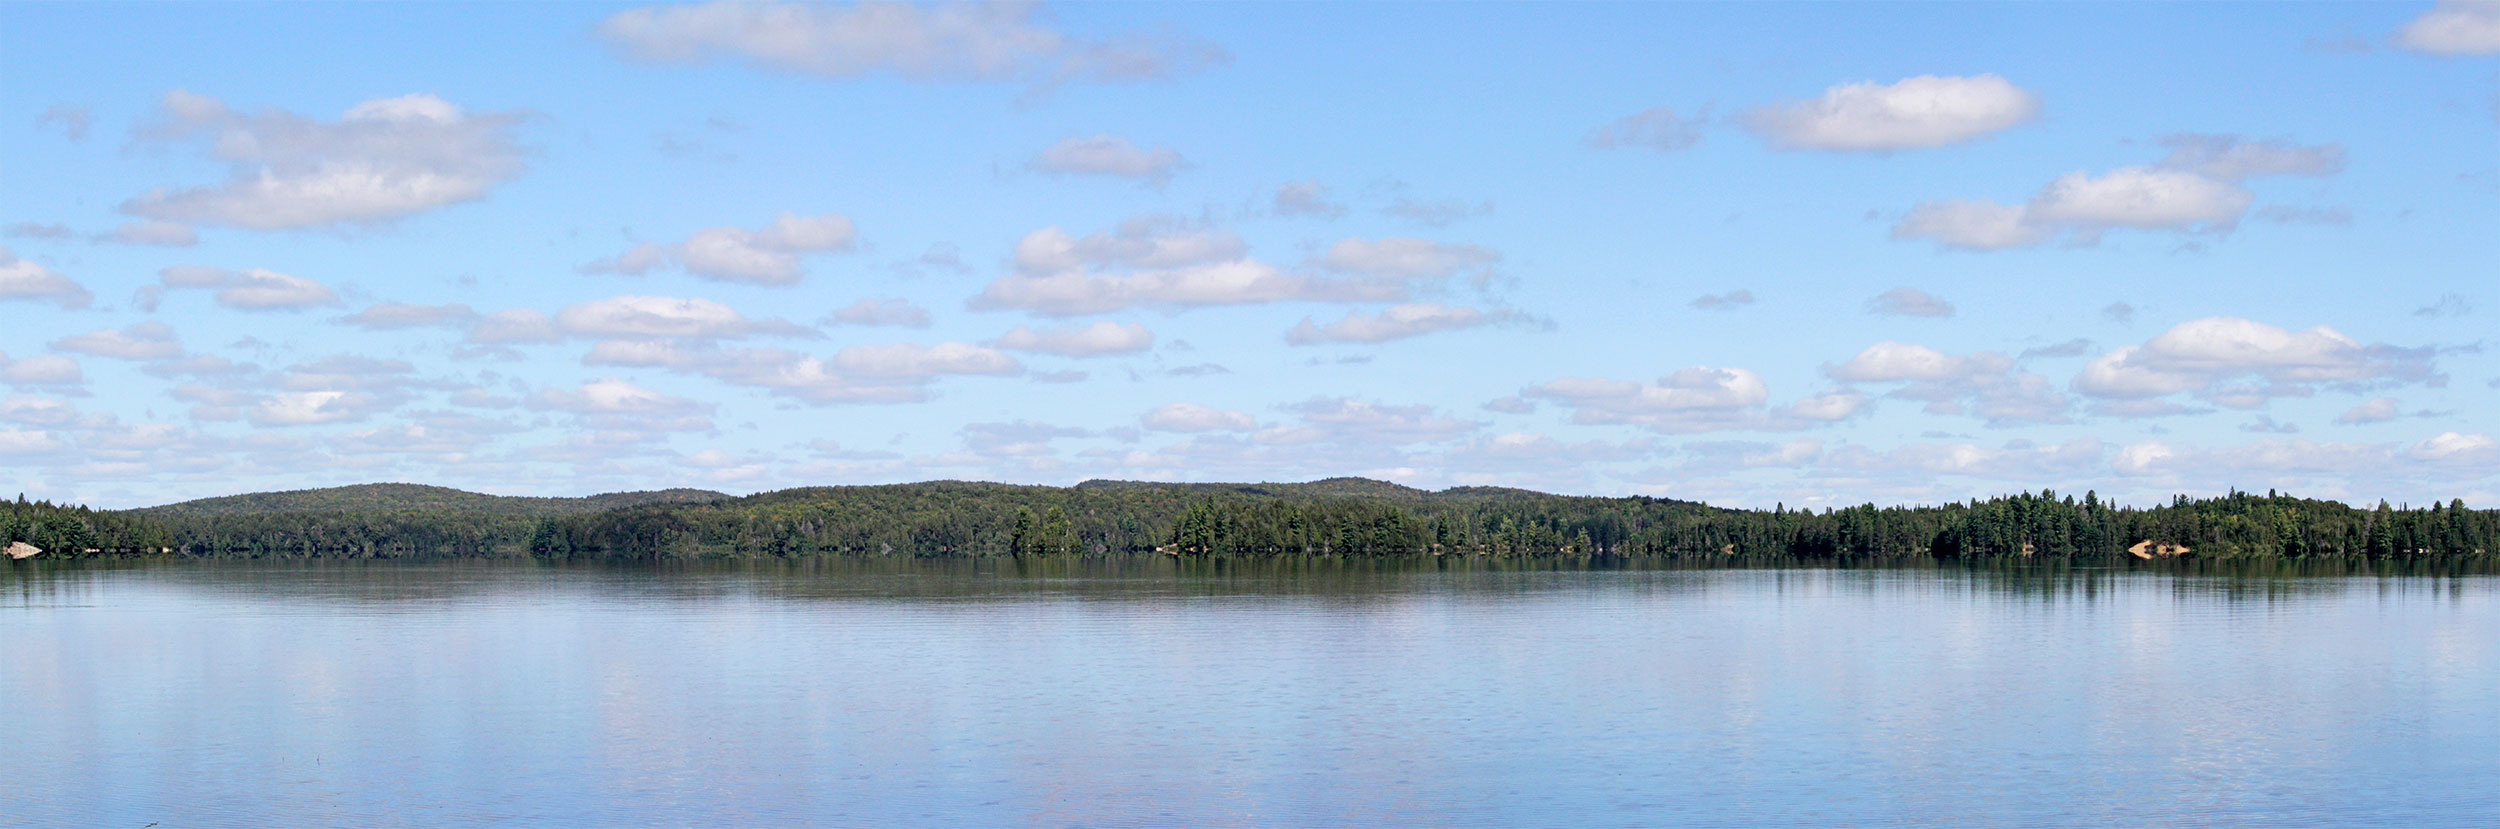 Panorama of Big Trout Lake during a sunny afternoon in September